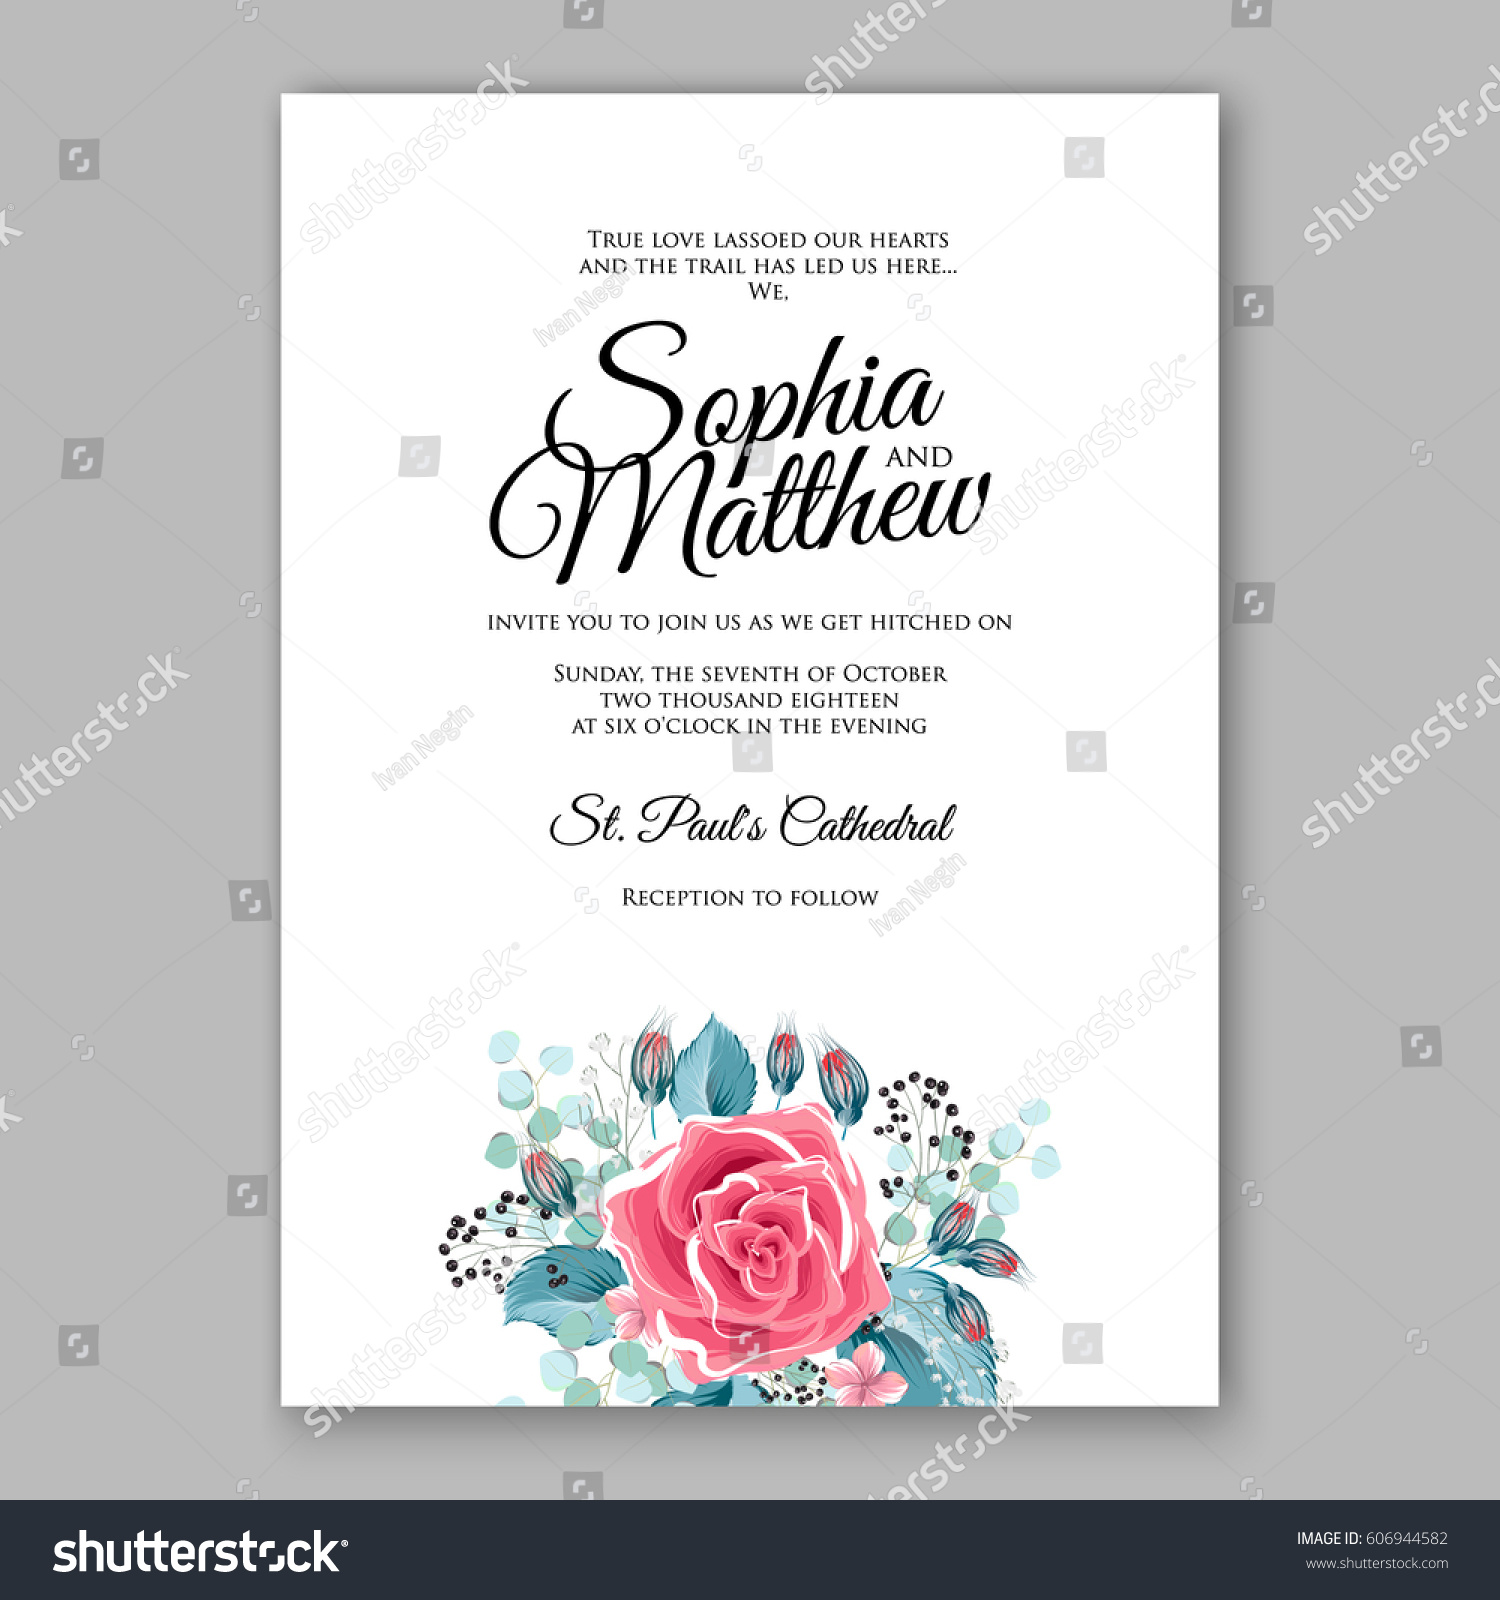 Red Rose Wedding Invitation Card Bridal Bouquet With Coral Roses, Pink  Ranunculus, Eucalyptus